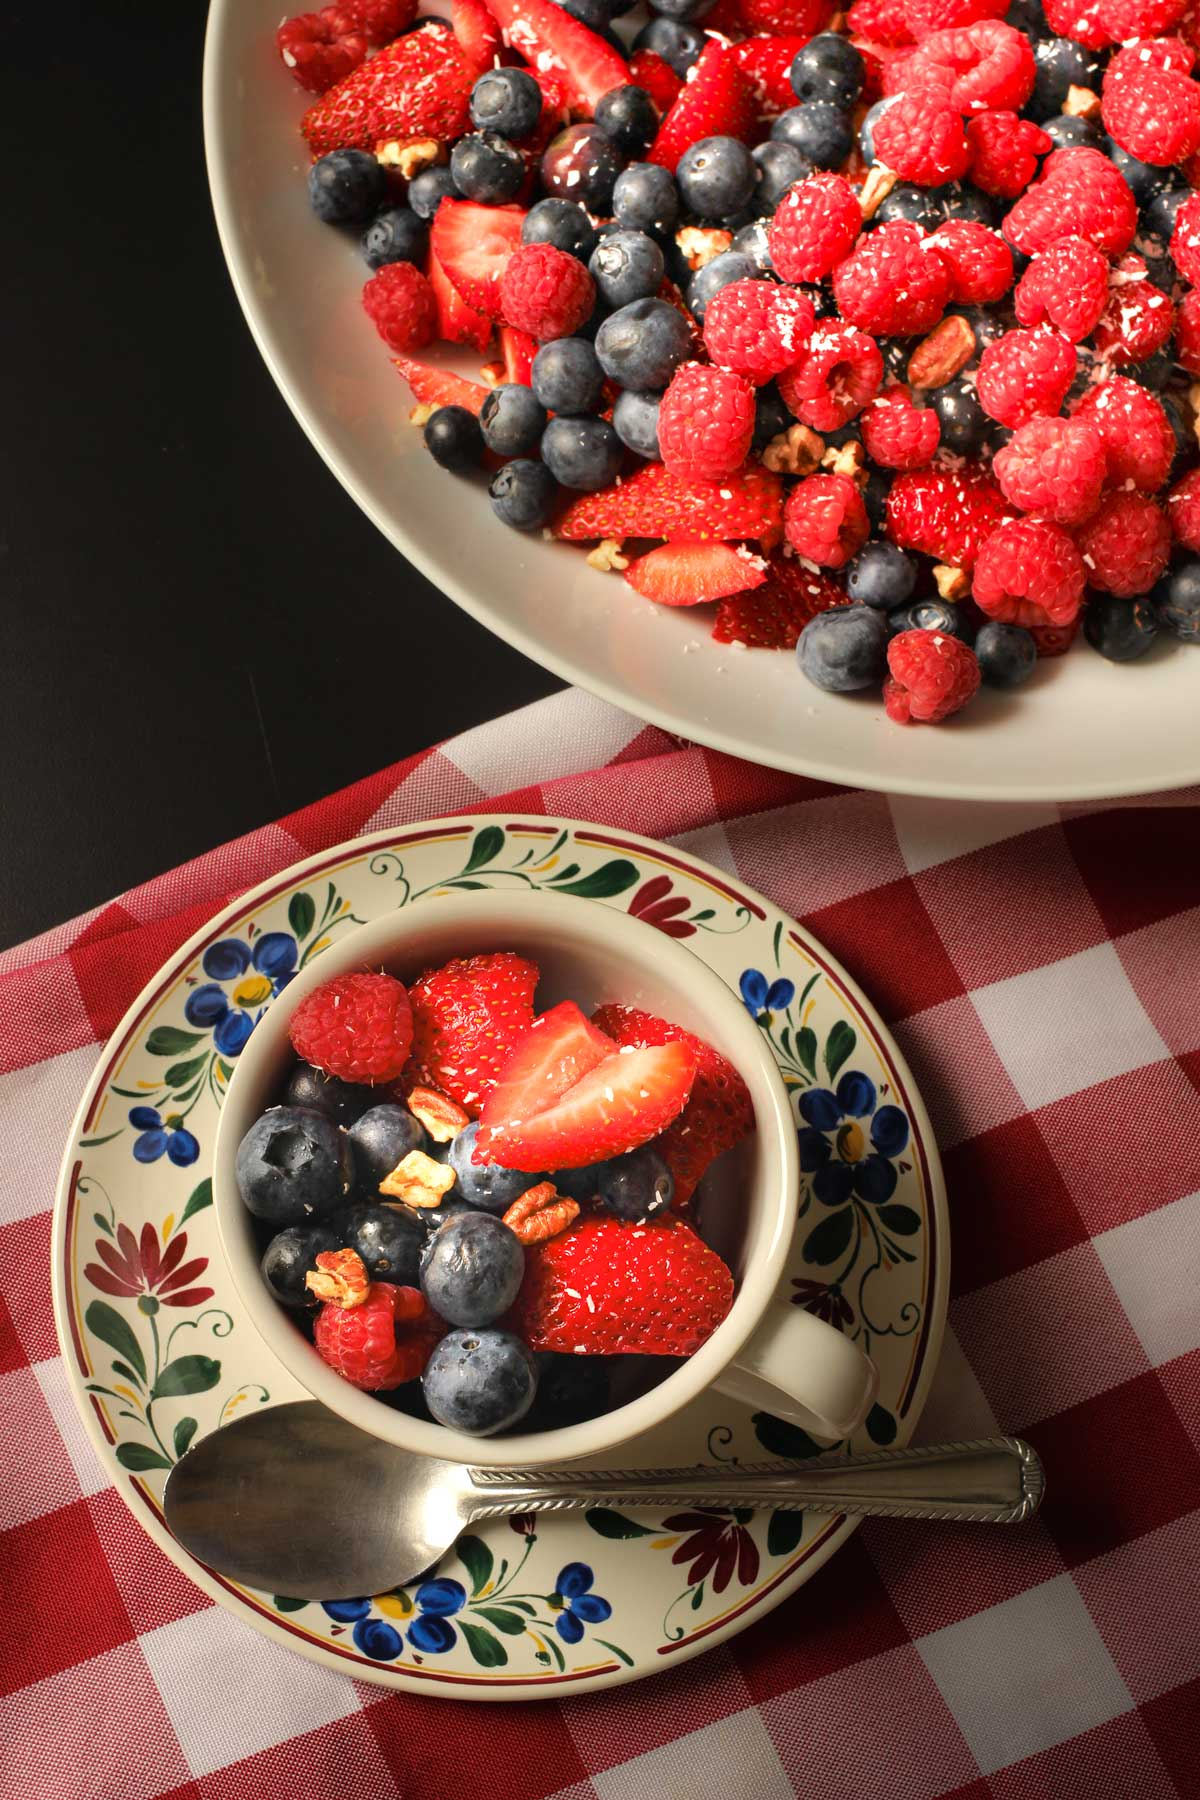 platter of berry salad near a floral teacup piled with berries.